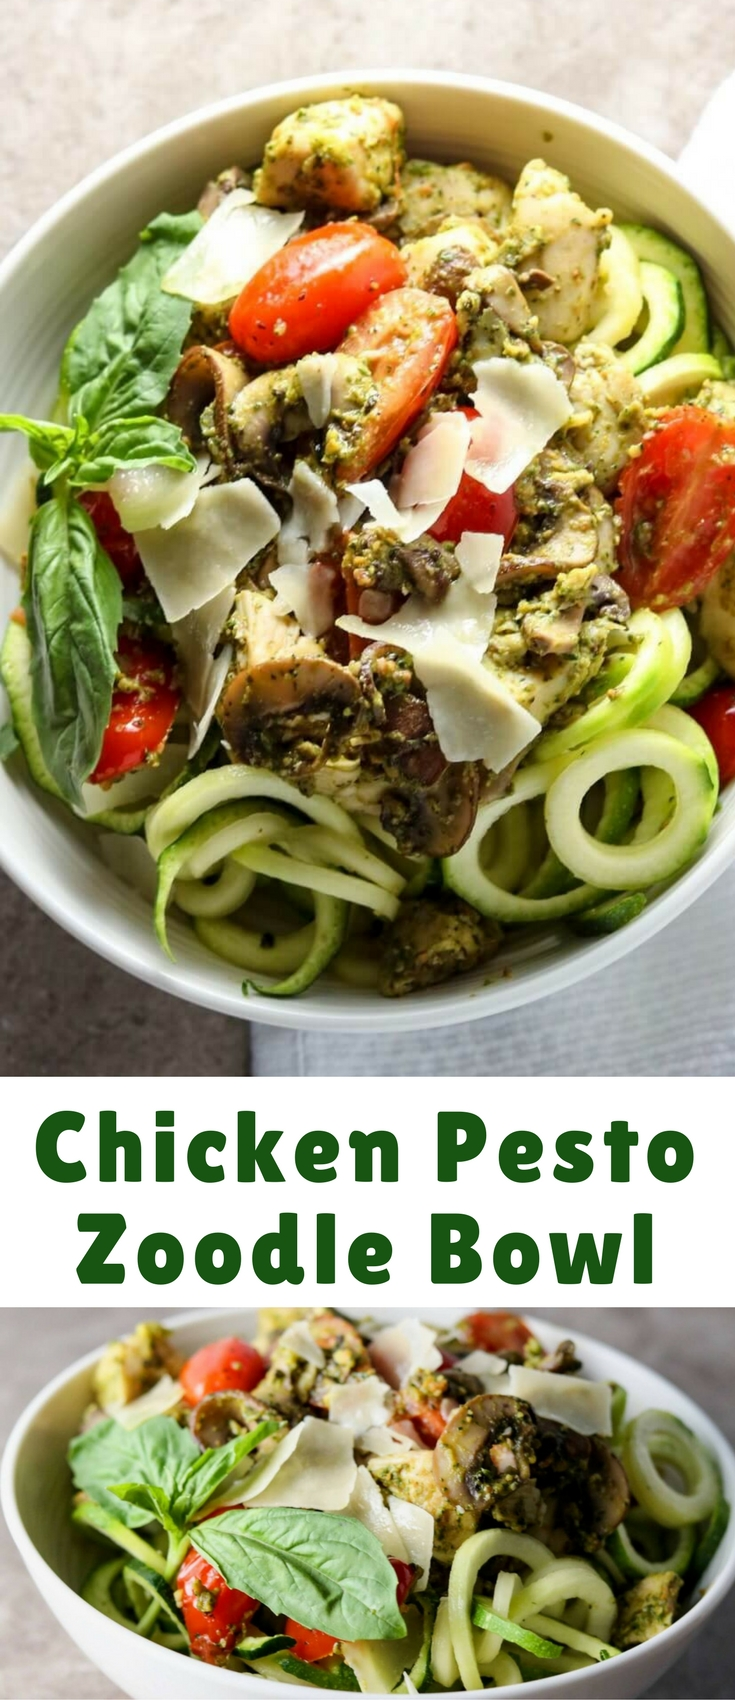 To give you an idea about how tasty this Pesto Zoodle Bowl with Chicken is, I overhear people standing around the breakroom talking about how amazing whatever just came out of the microwave smells